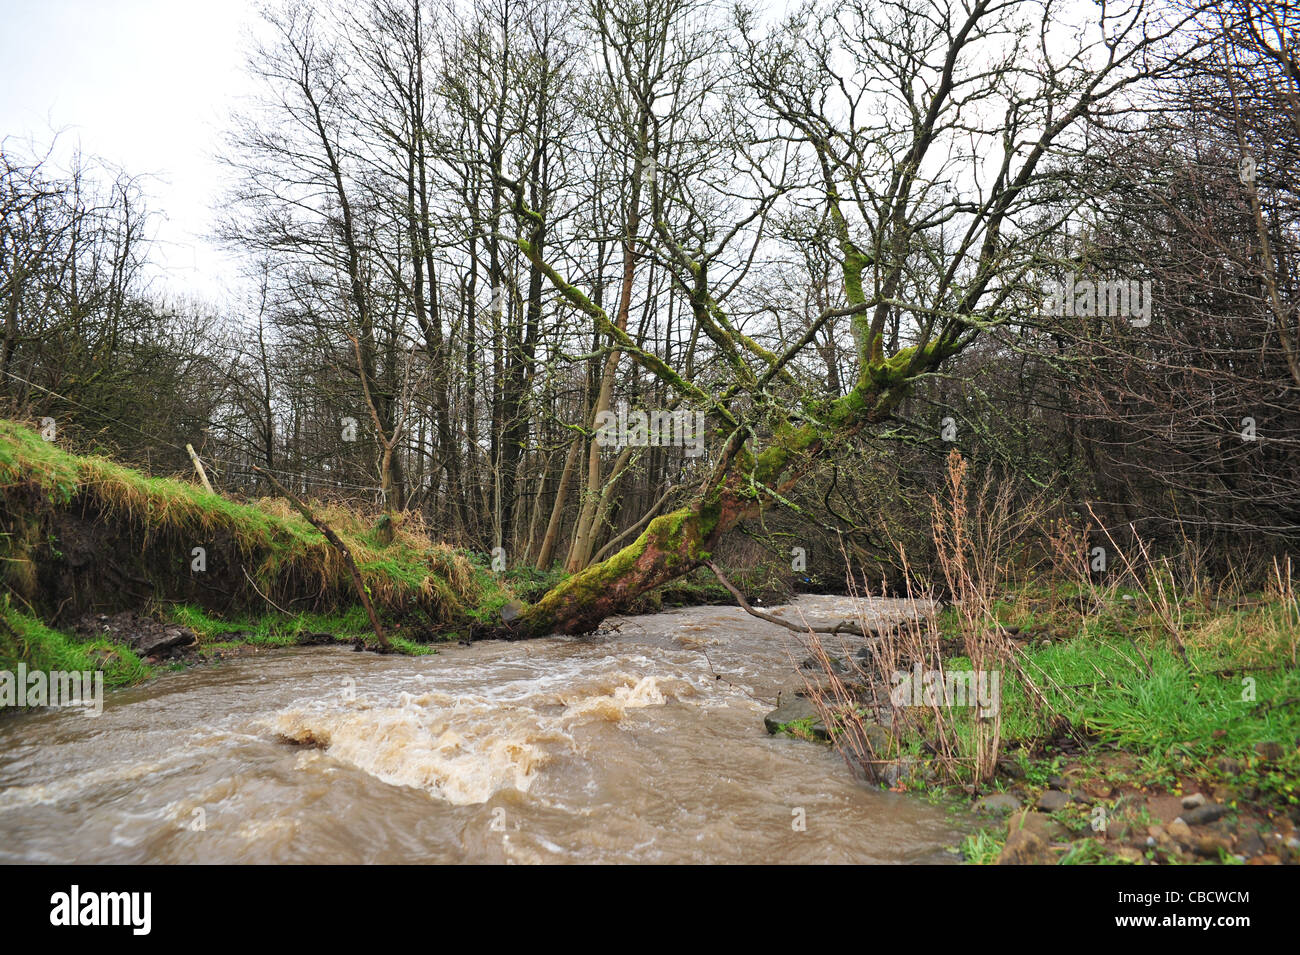 Tree falling into river from erosion and environmental issues on the River Brun in Burnley Lancashire. - Stock Image